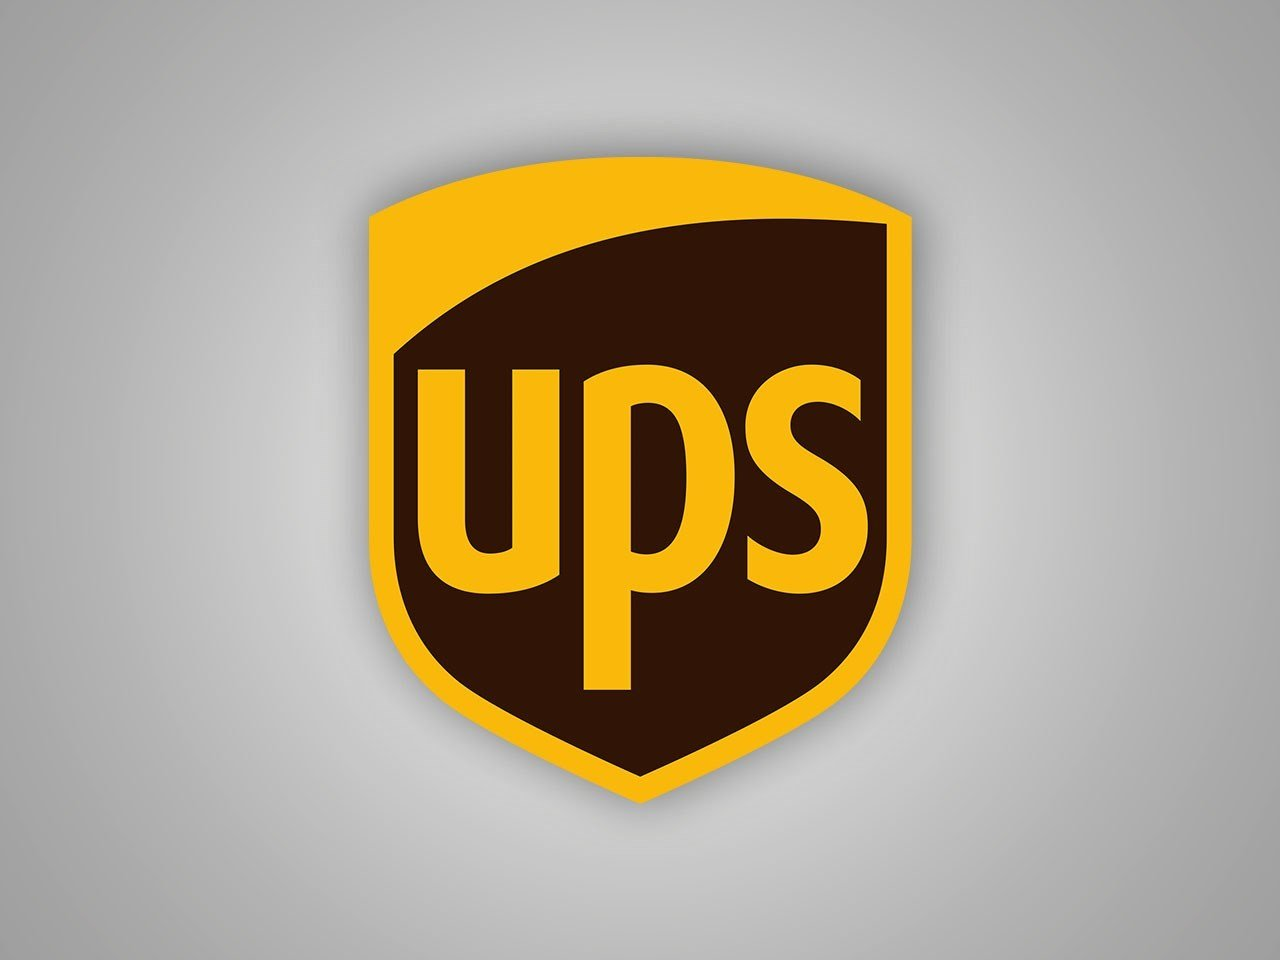 UPS warns of delivery delays after Cyber Monday boom